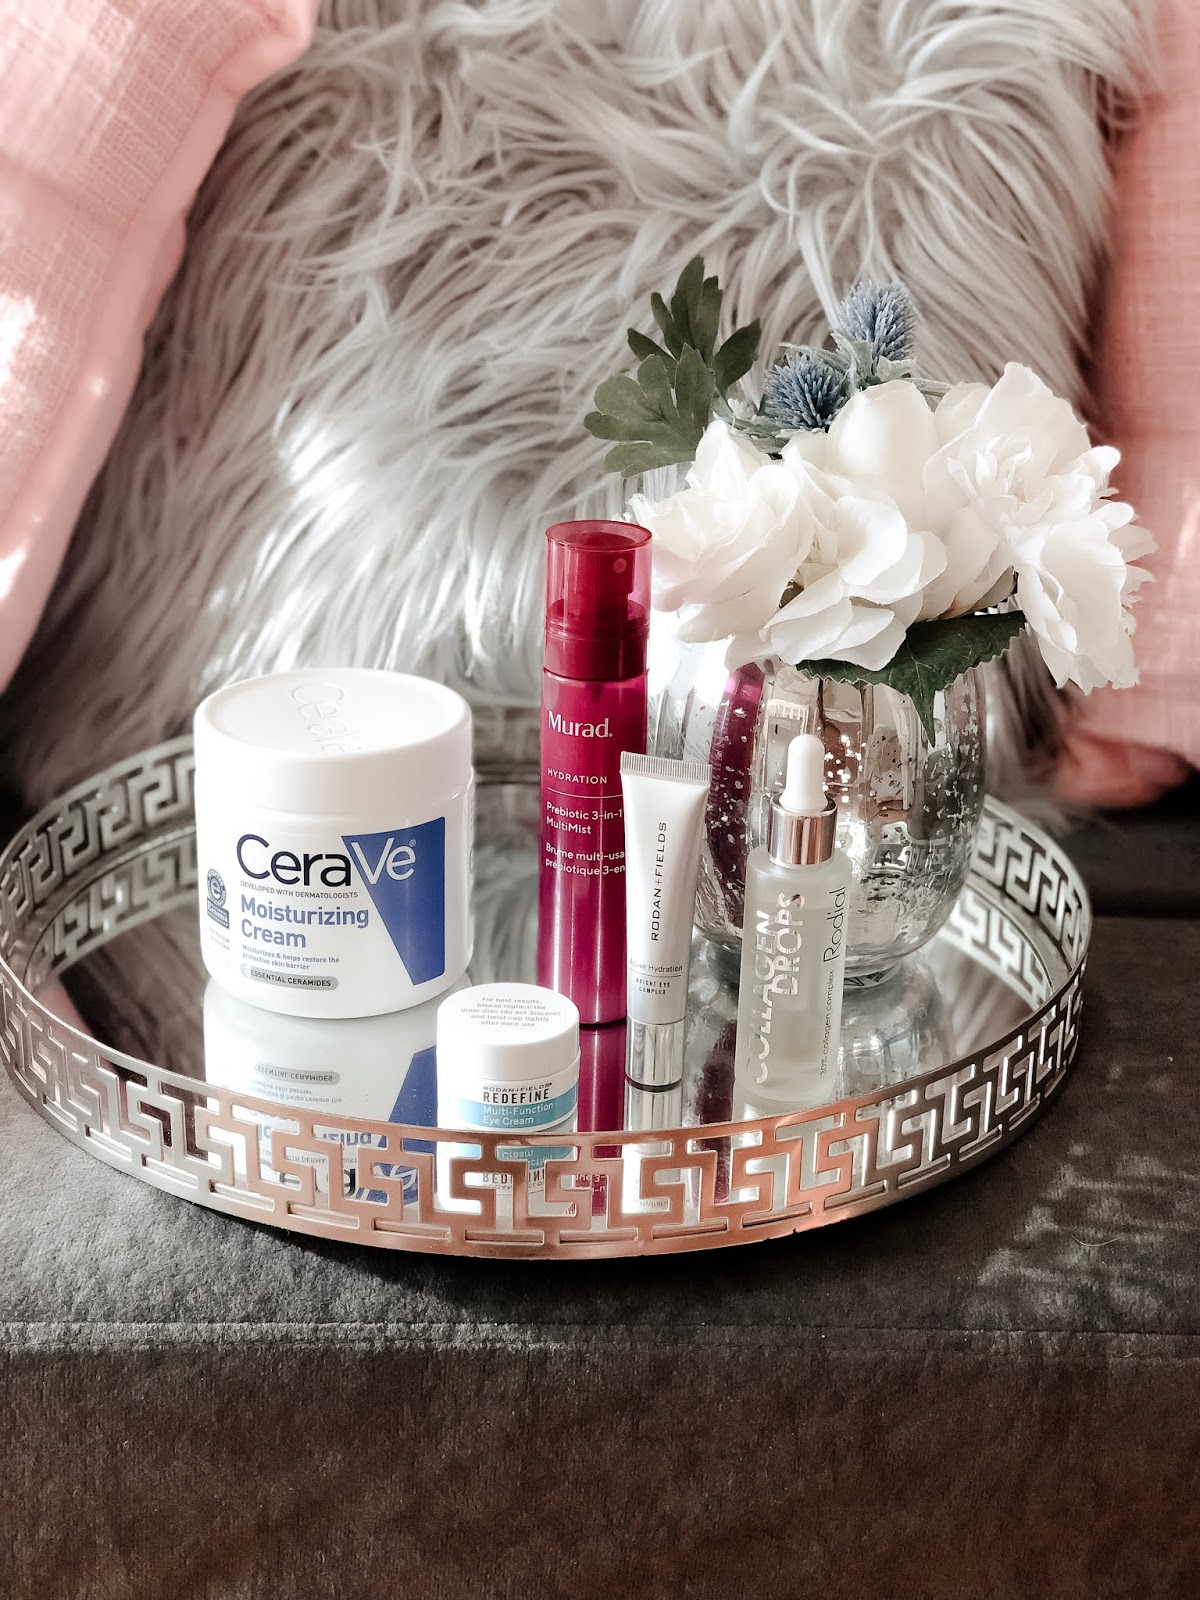 5 Skincare Products To Start The New Year, beauty bloggers, skincare solutions, dry skin, moisturizers, Cerave, Rodan and Fields, Murad, Rodial